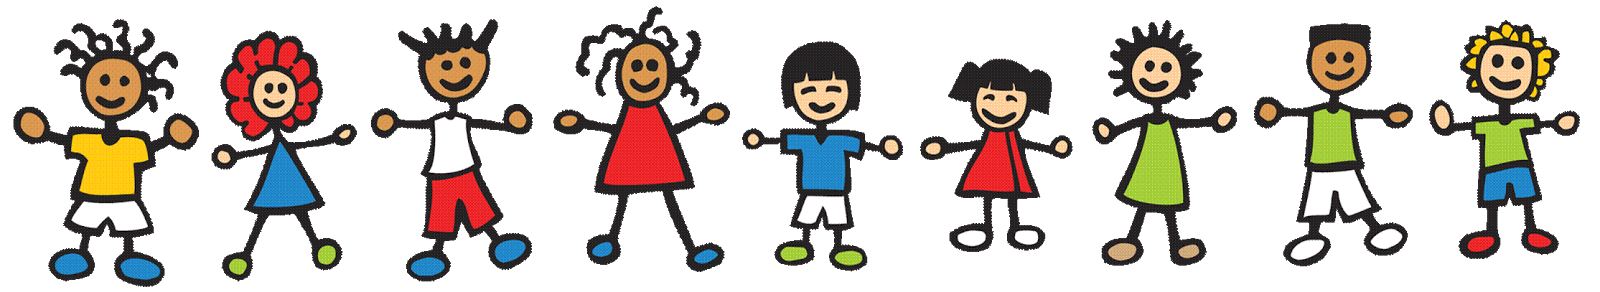 School dress code clipart jpg royalty free stock Little Kids Holding Hands Clipart | Free download best Little Kids ... jpg royalty free stock